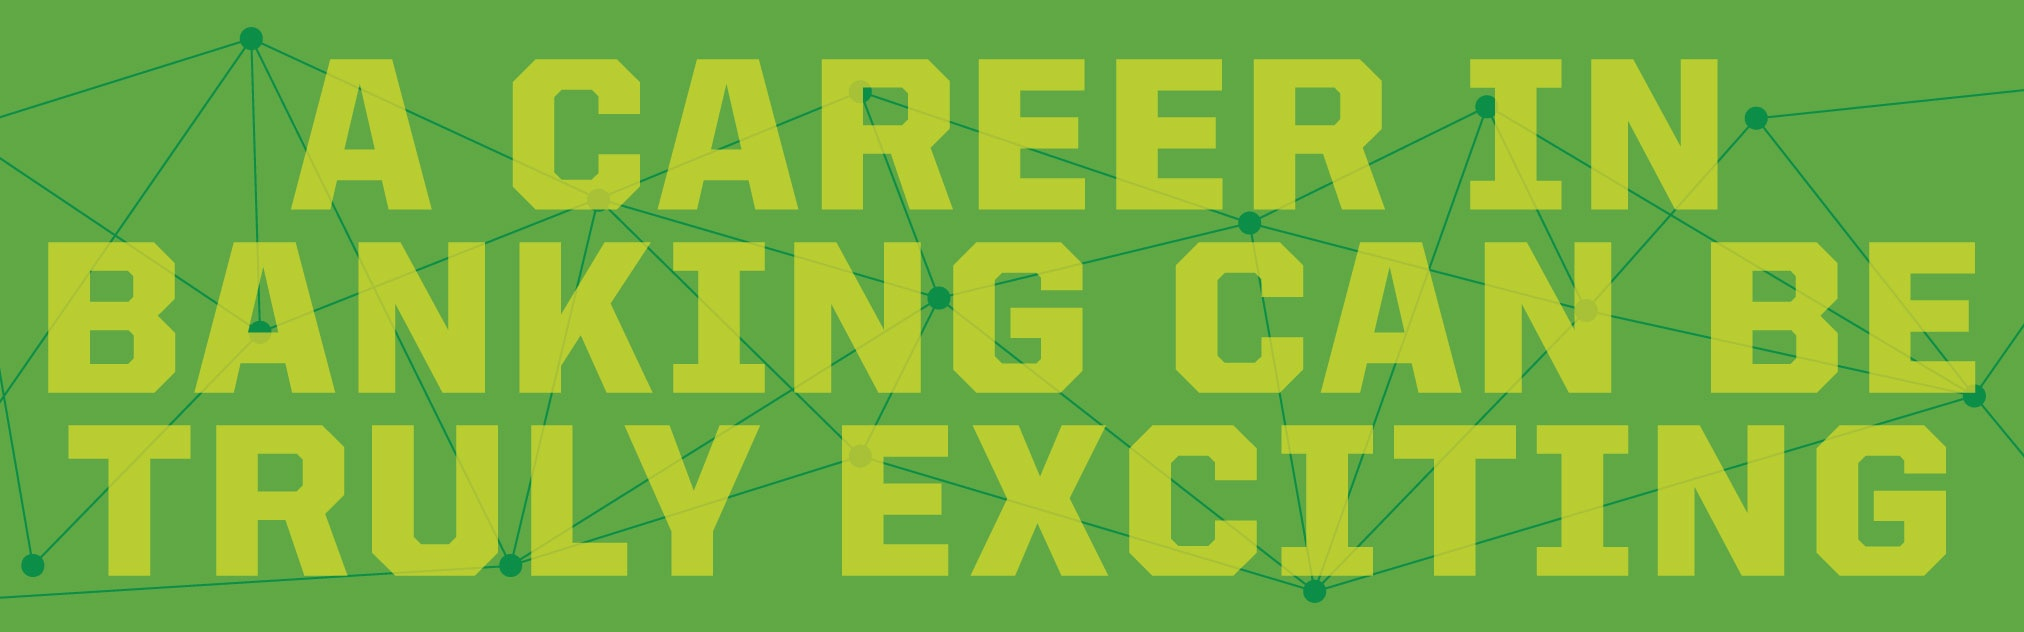 Graphic with text 'A career in banking can be truly exciting.'